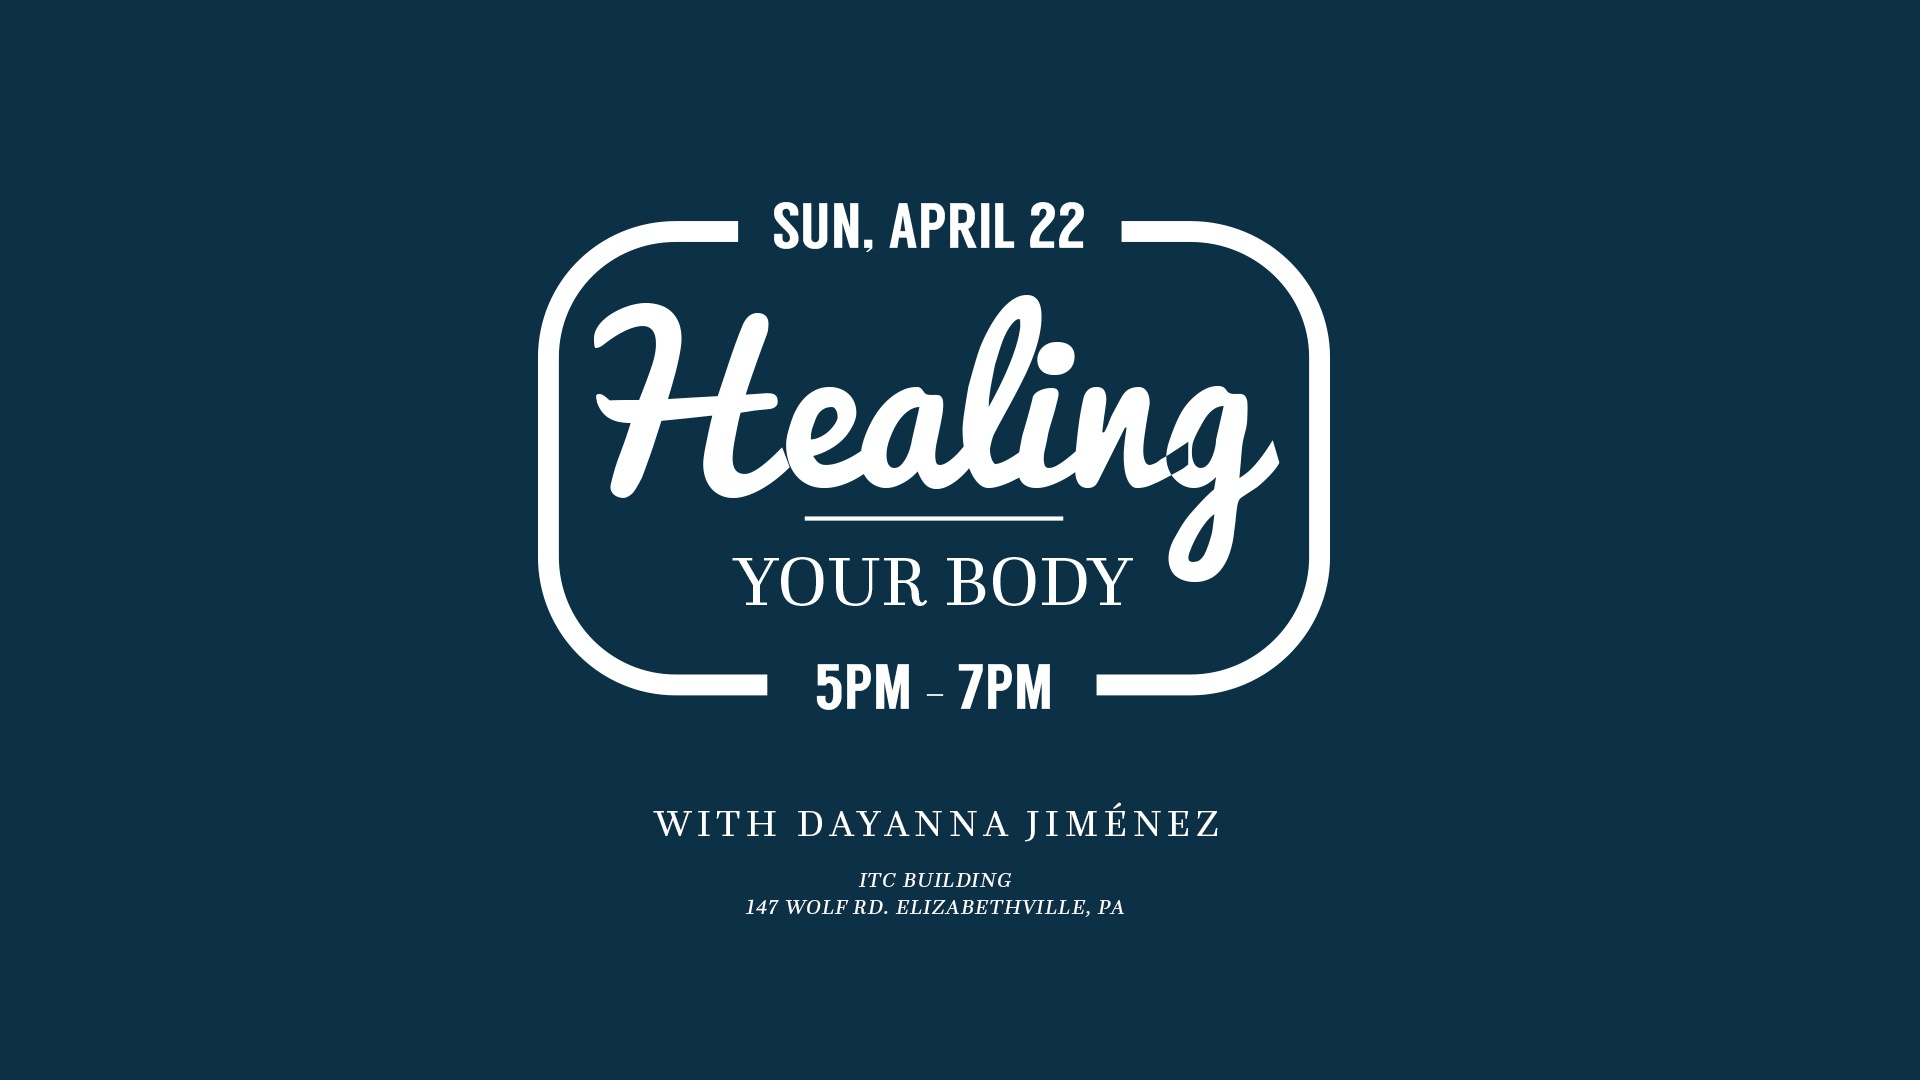 Healing Your Body with Dayanna Jimenez